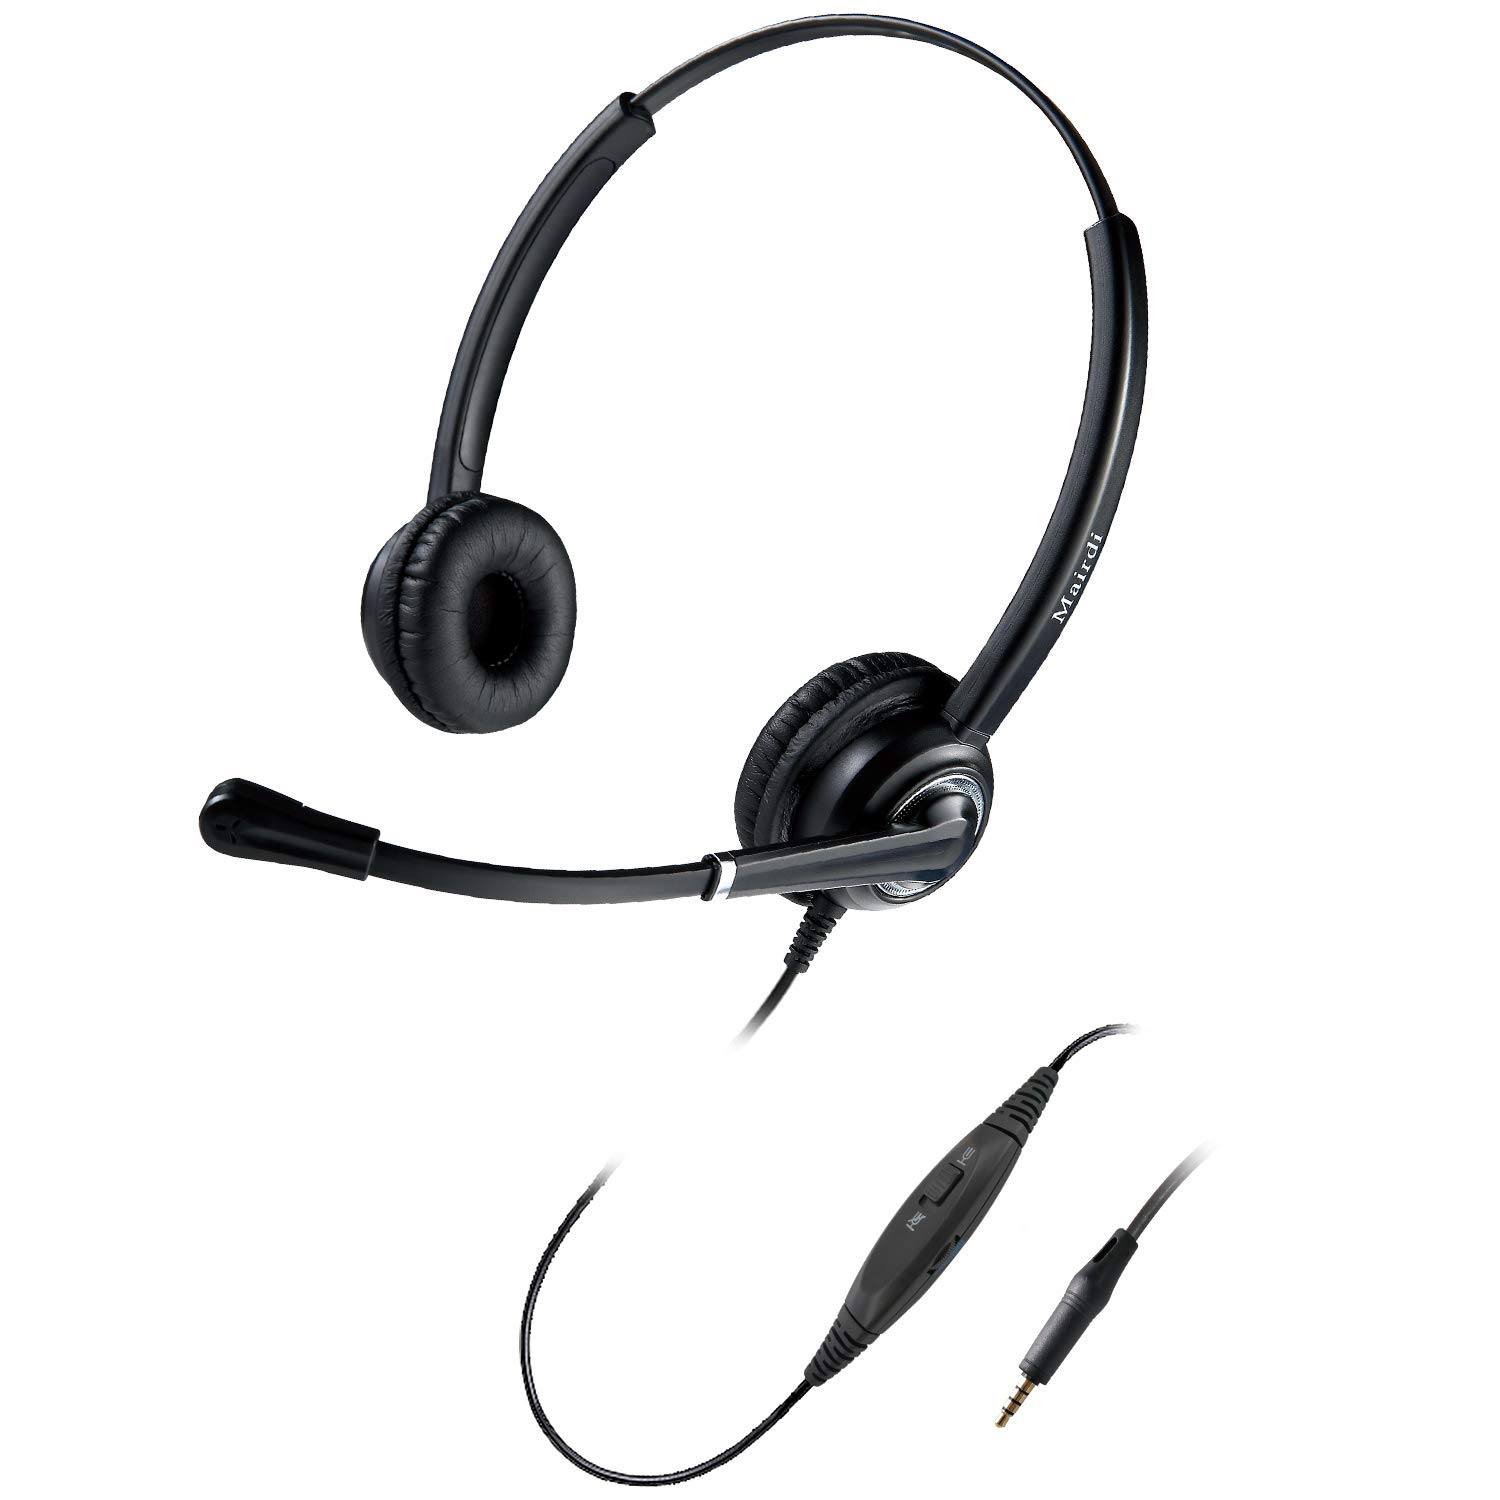 Amazon Com Mairdi Cell Phone Headset With Microphone Nosie Cancelling Wired 3 5mm Headset For Iphone Samsung Mobile Ipad Computer Laptop Tablets W Mic Mute Volume Control Light Weight Adjustable Headband Electronics